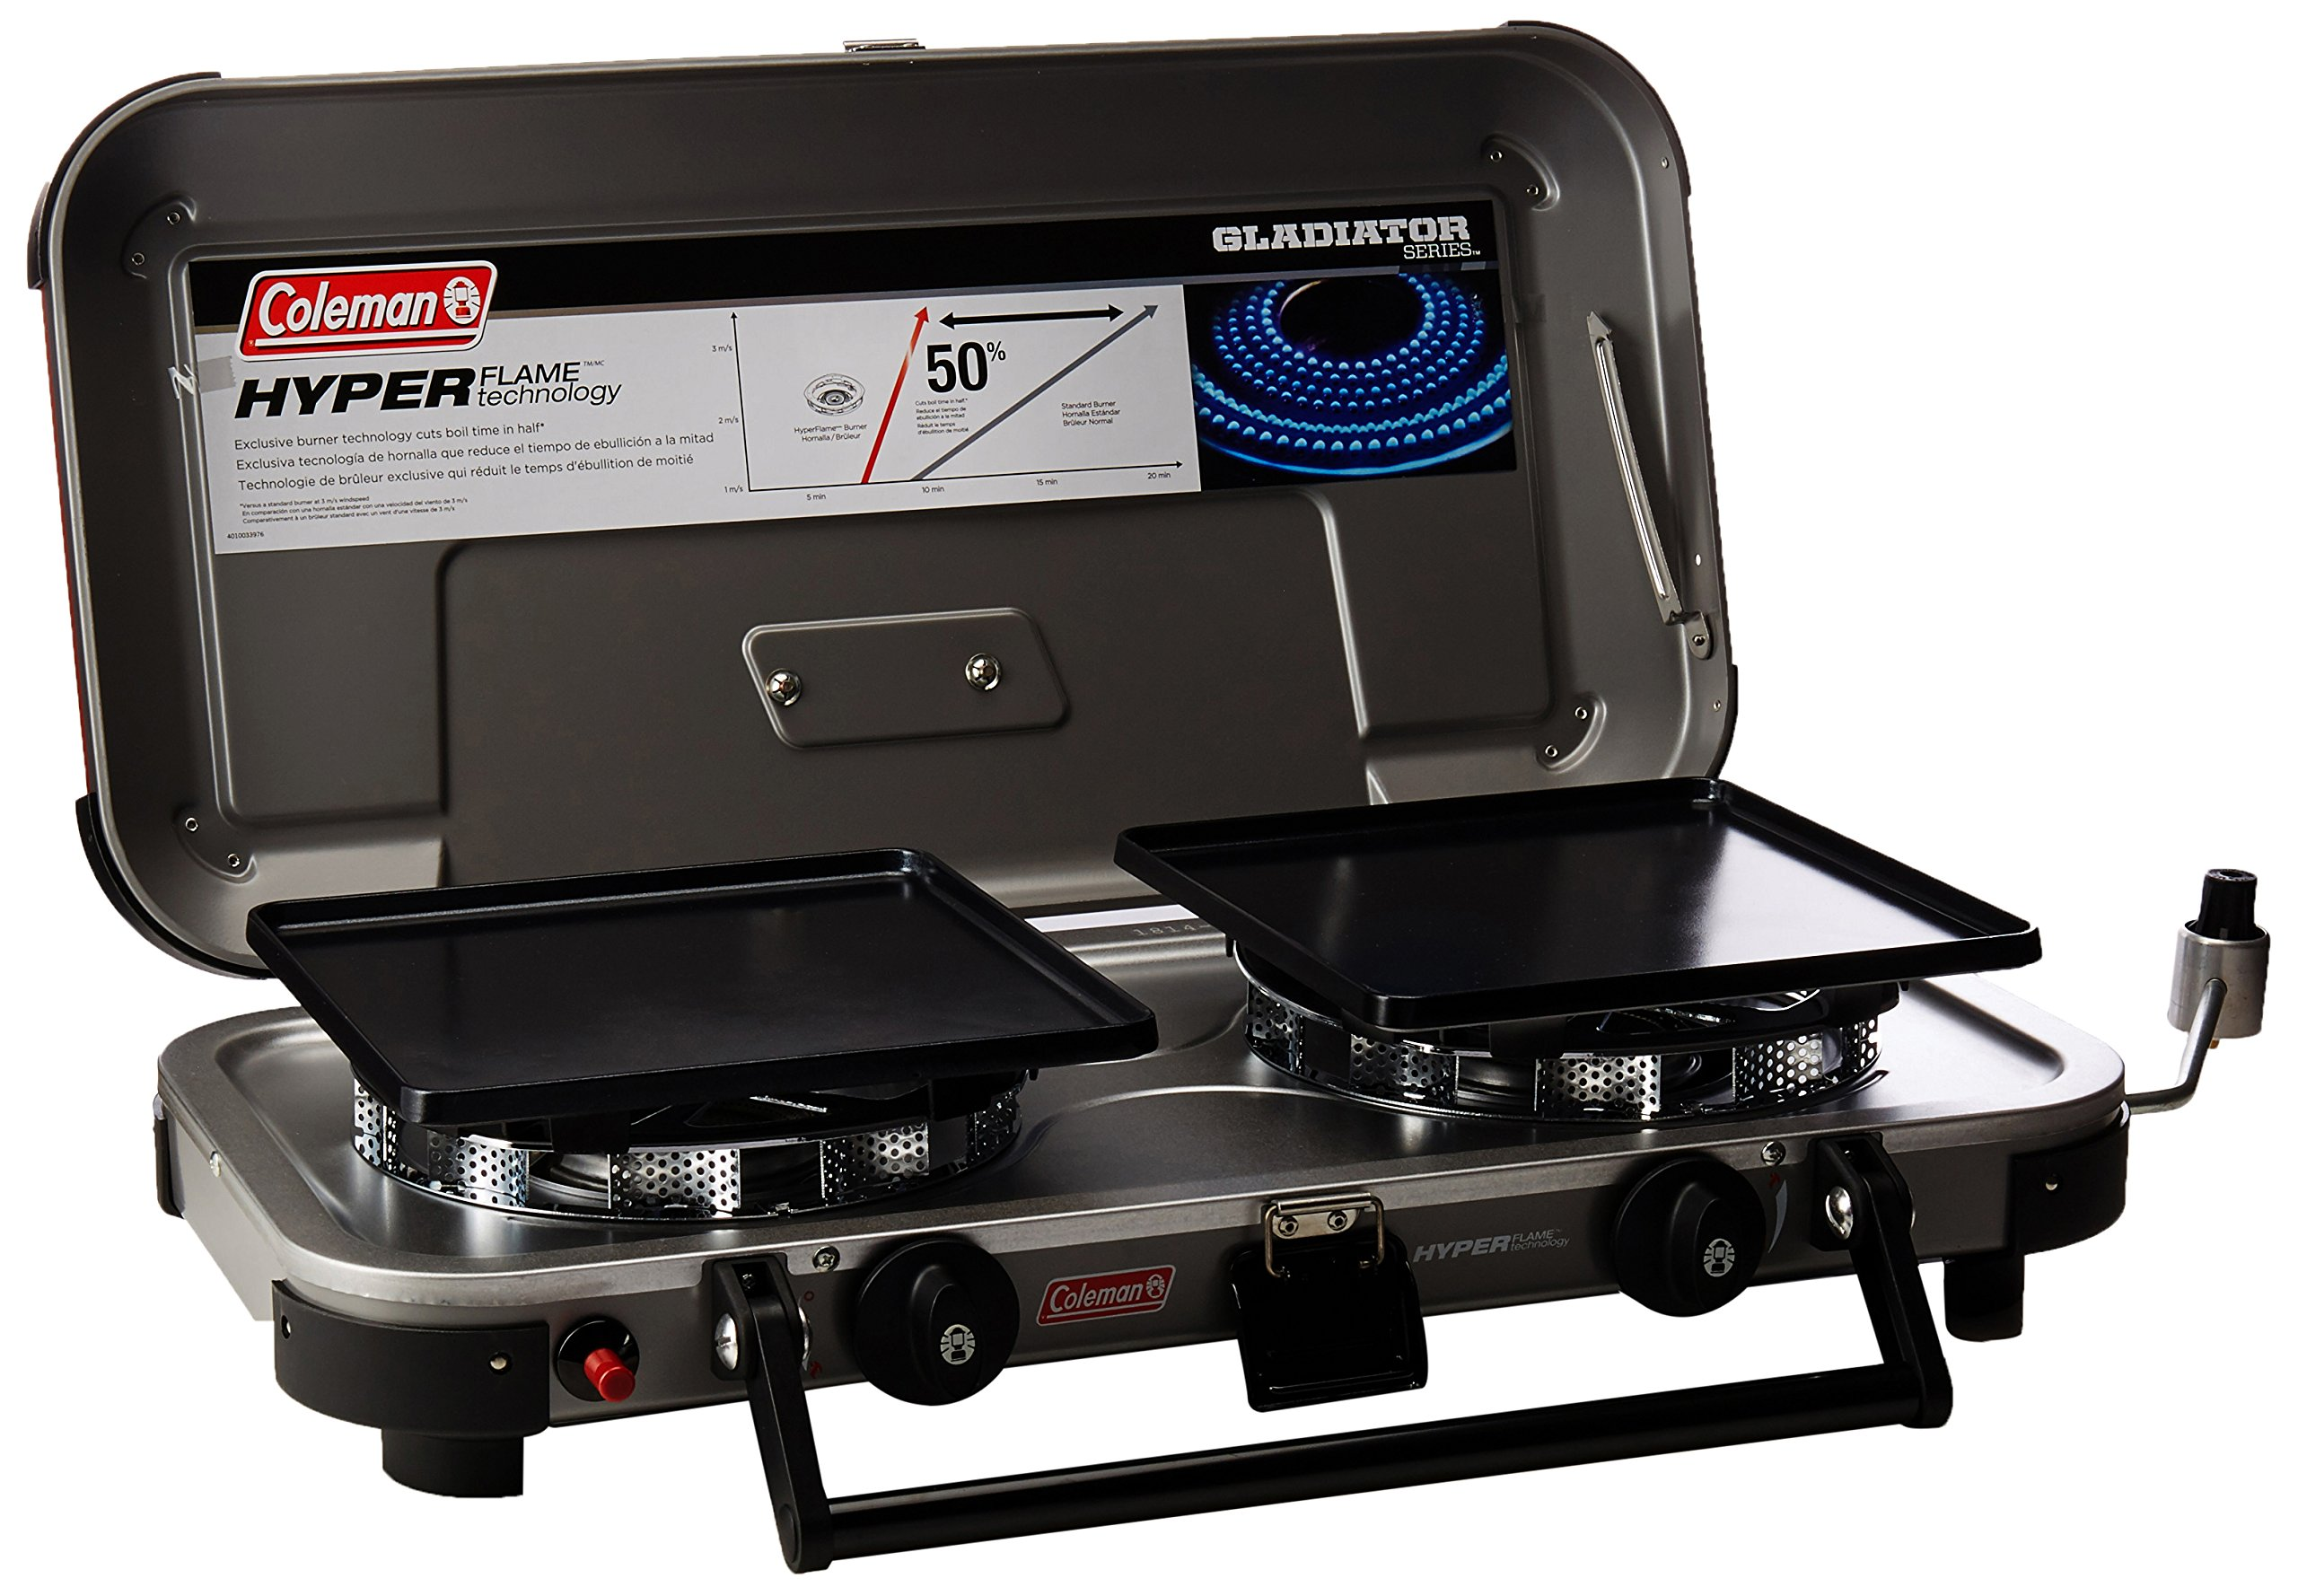 Coleman Company Signature Hyper Flame Gladiator Stove, Black by Coleman (Image #1)